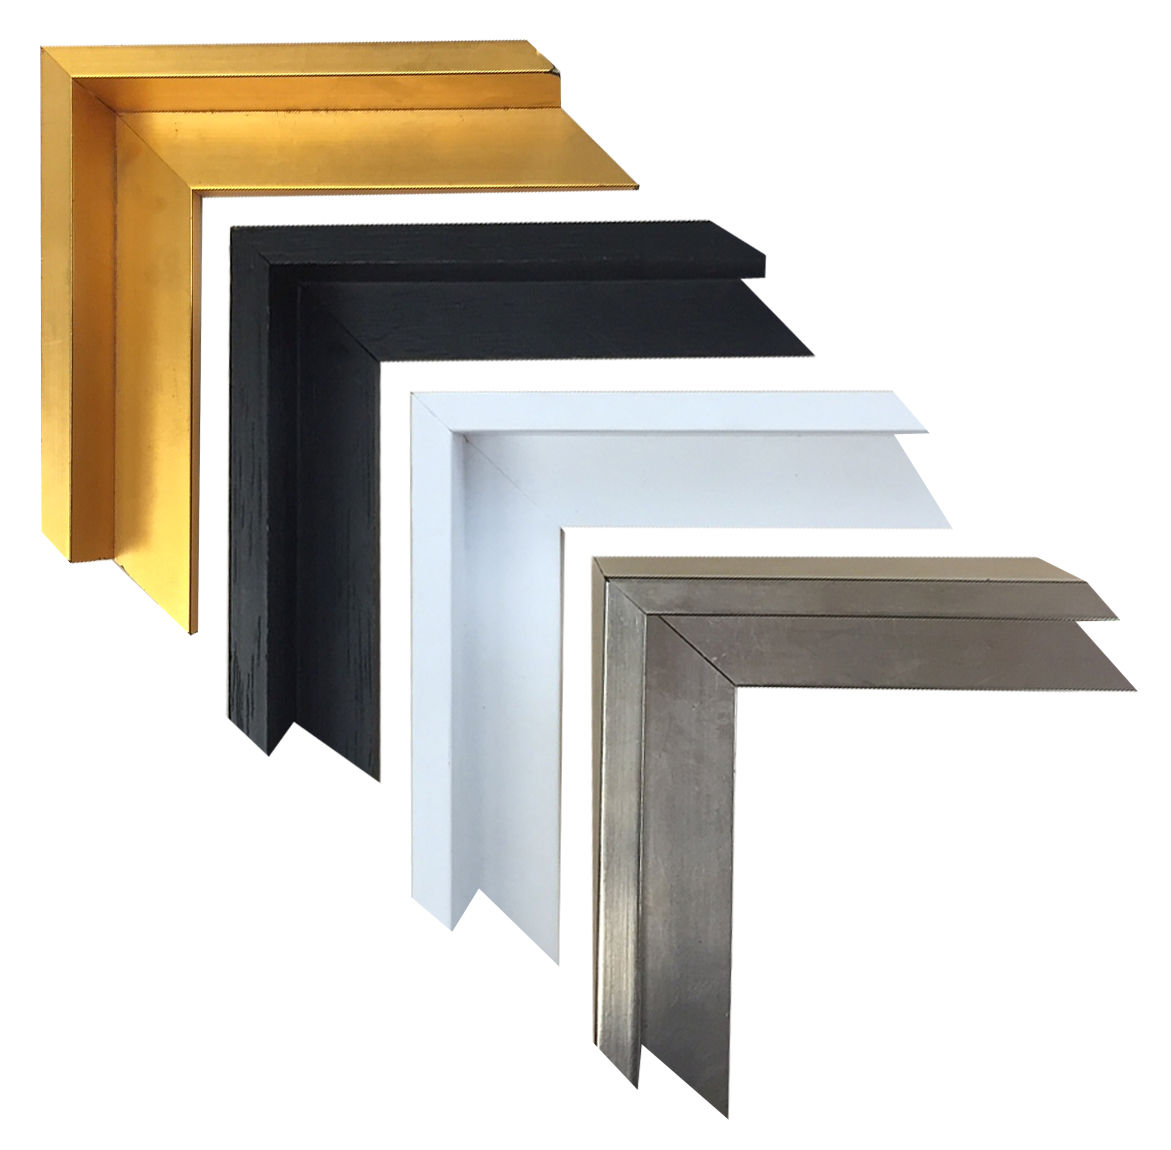 Custom Picture Framing - Floater Frames in 4 Colors